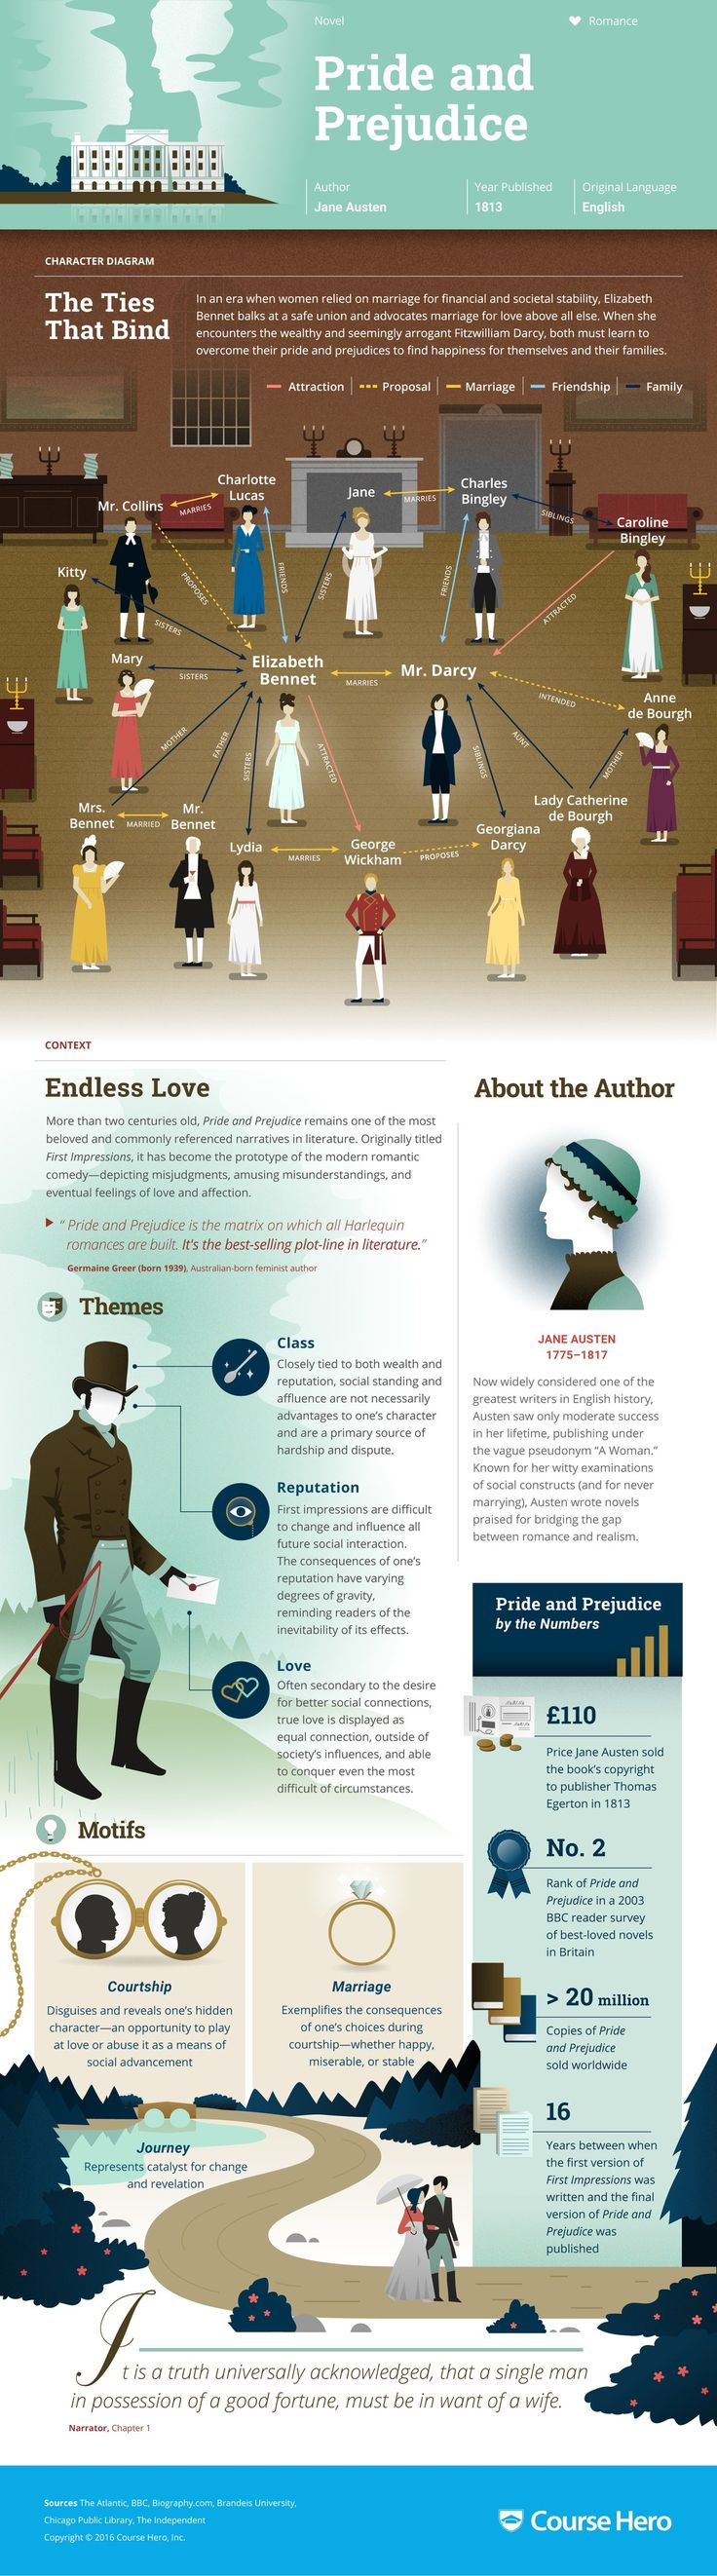 best pride and prejudice analysis ideas pride this pride and prejudice infographic from course hero is as awesome as it is helpful